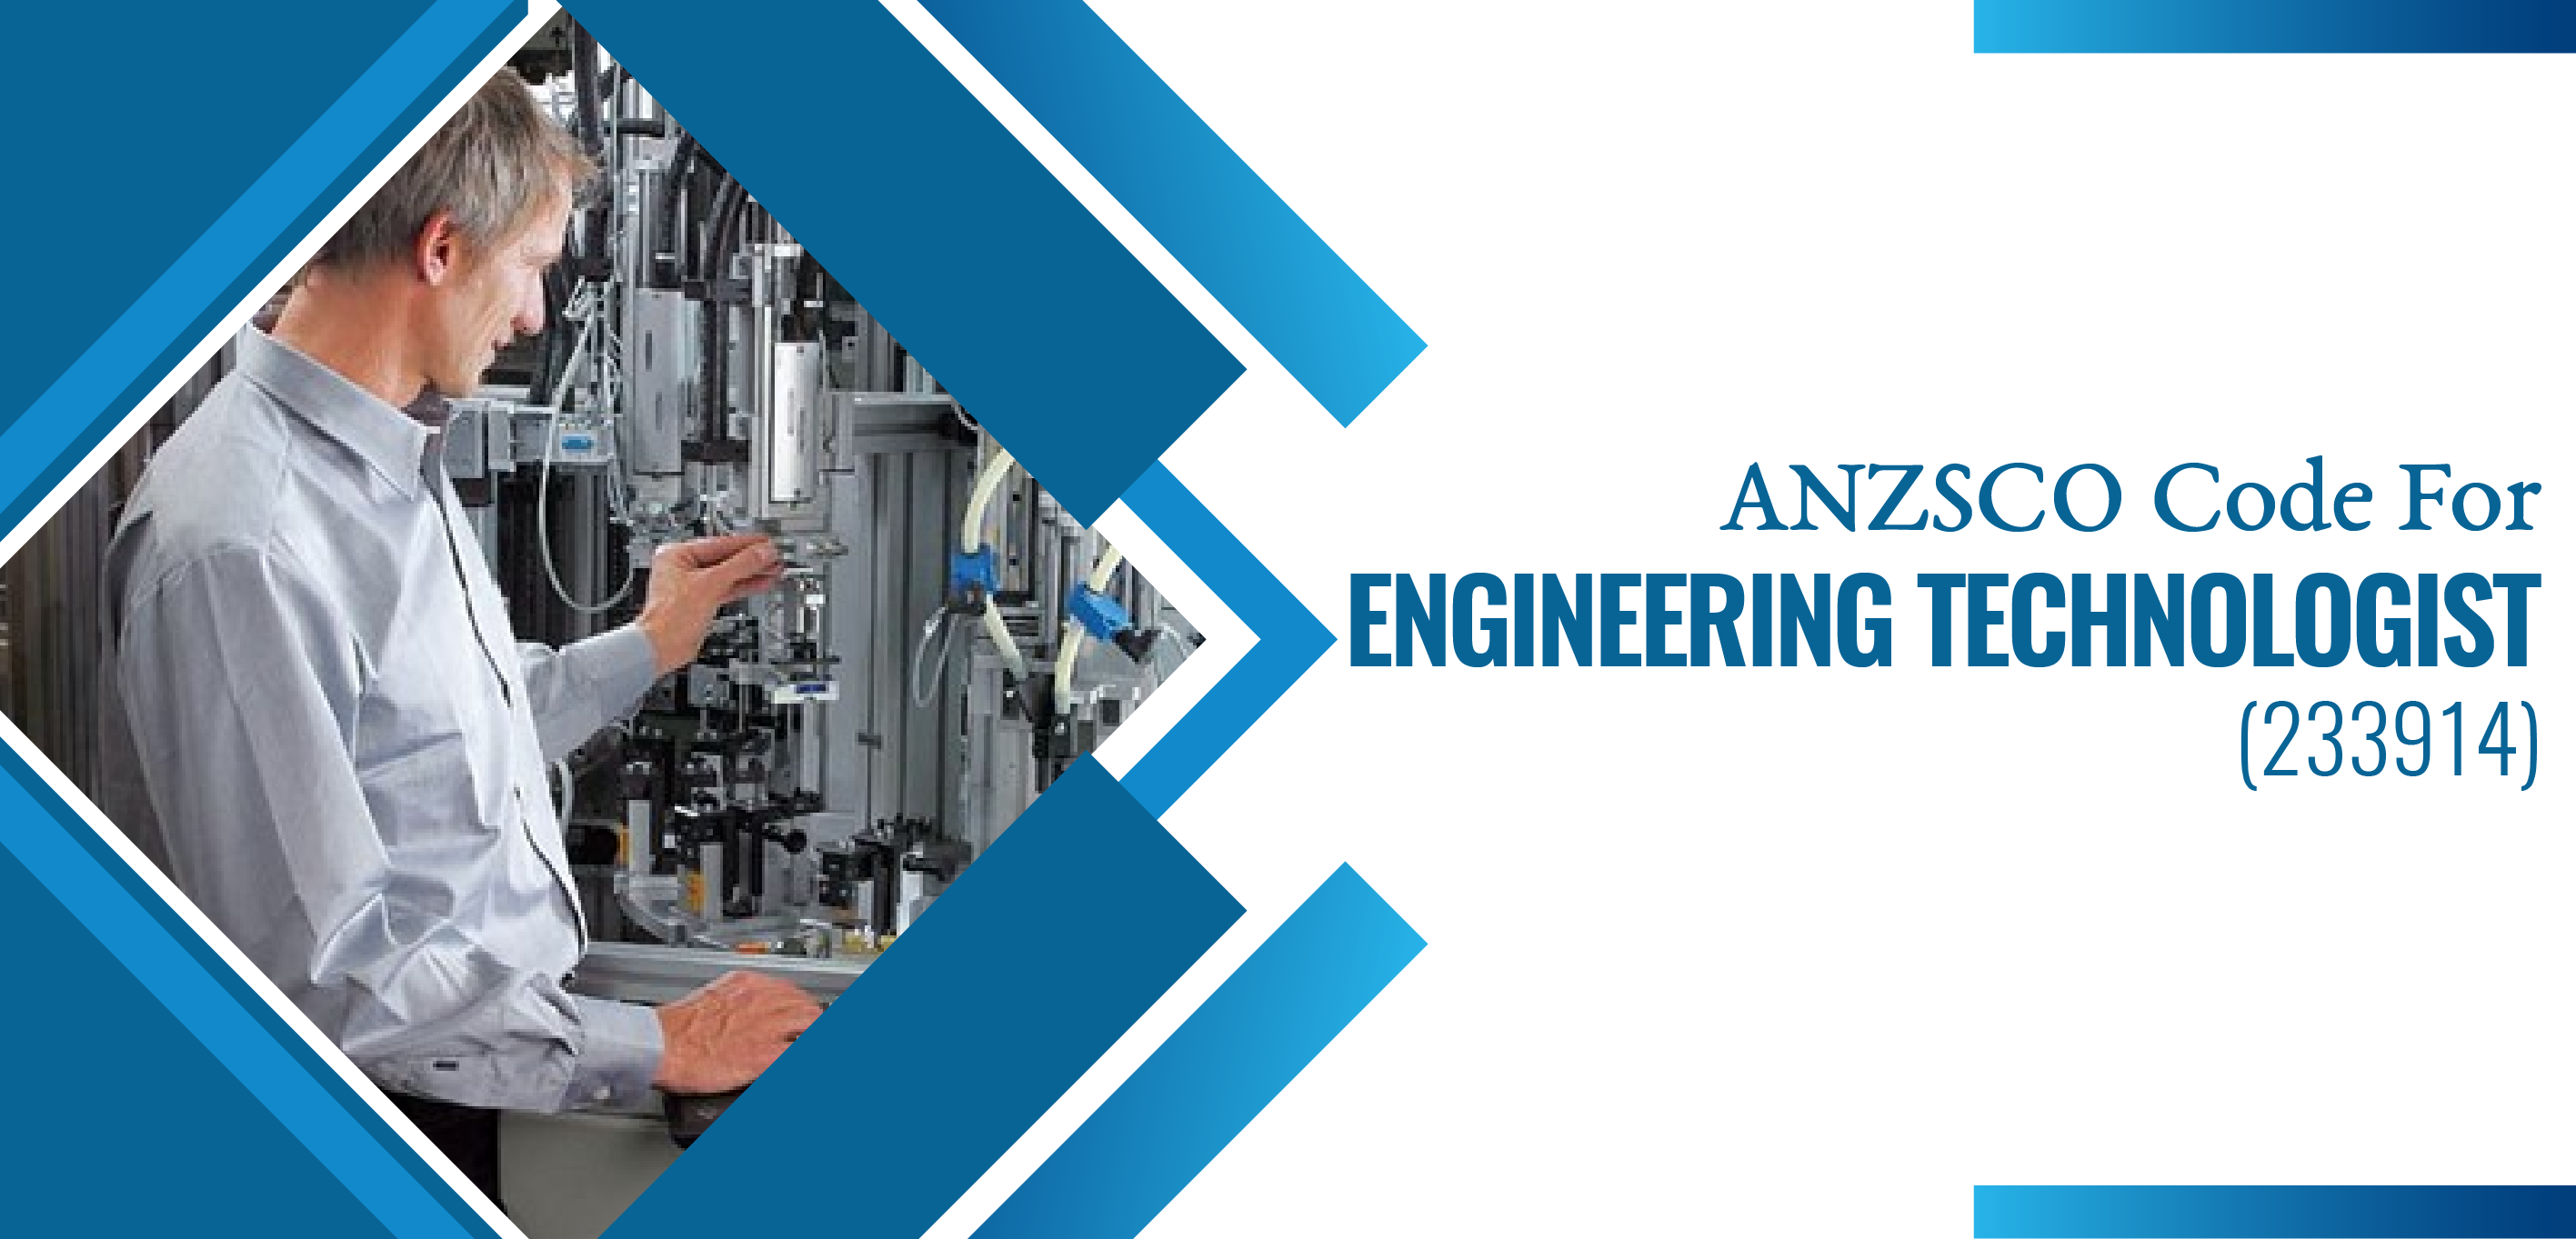 ANZSCO Code for Engineering Technologist